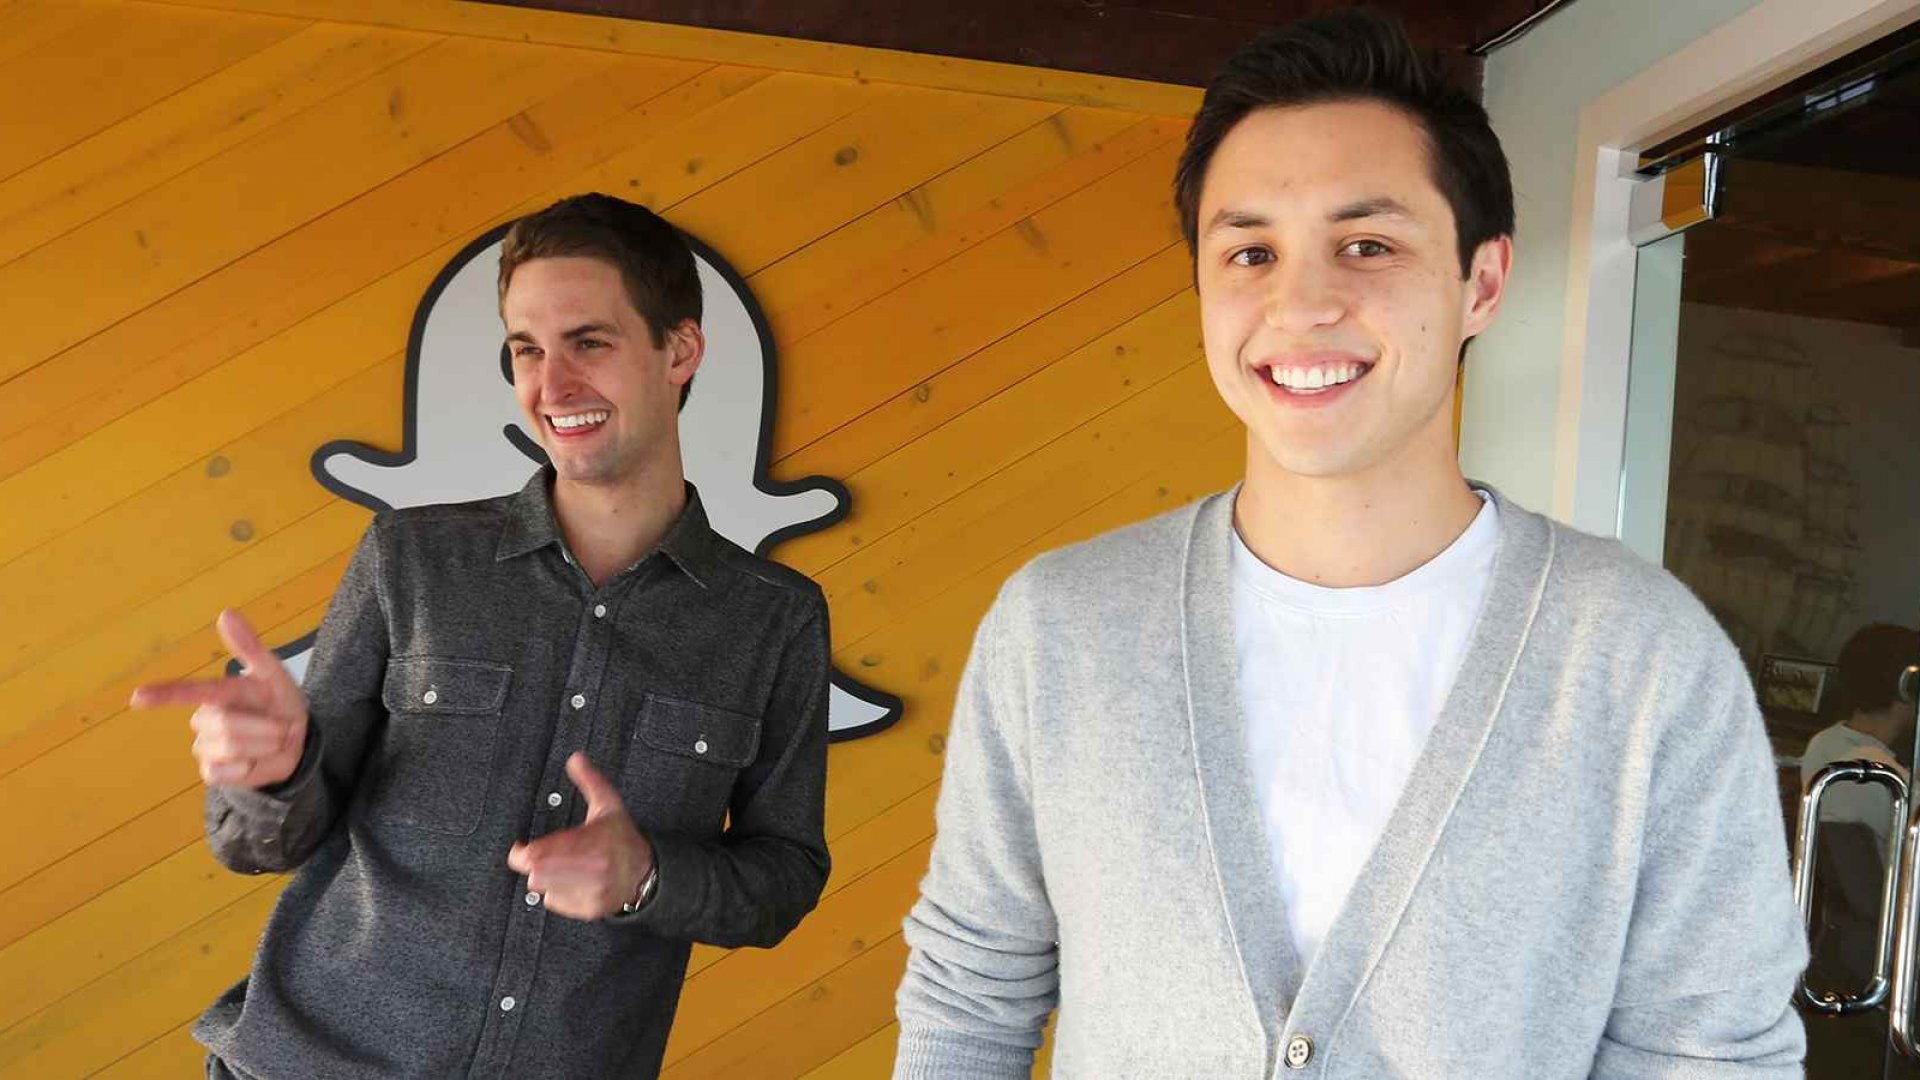 It's Out! Snap IPO at $24 Billion